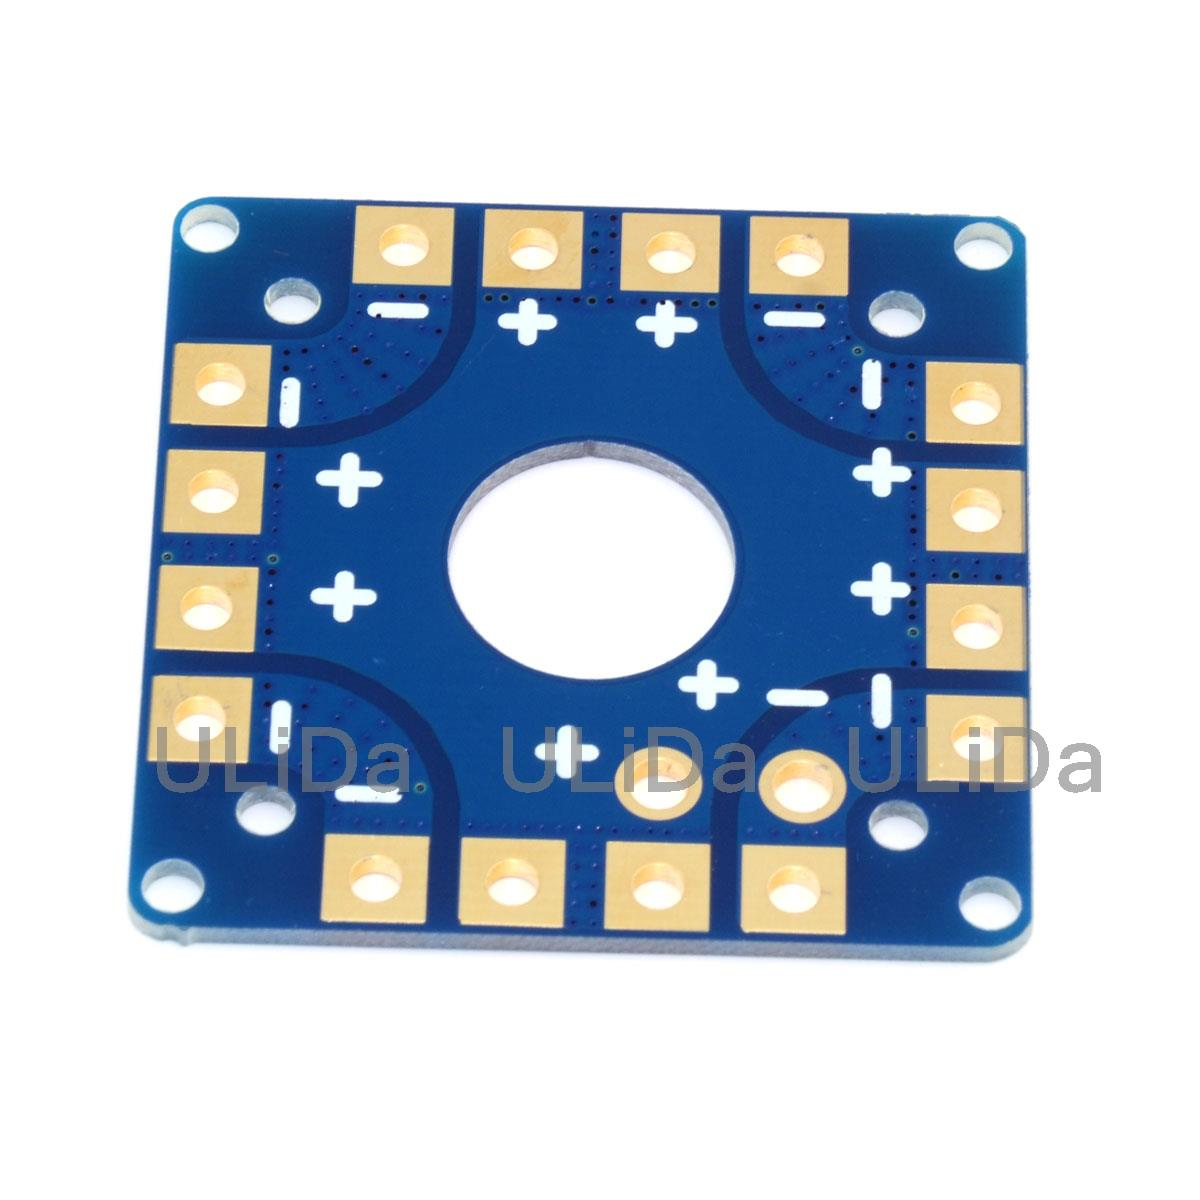 Esc Speed Controller Board Kk Mwc Multicopter Quadcopter Tricopter Wiring Xcopter In Parts Accessories From Toys Hobbies On Alibaba Group